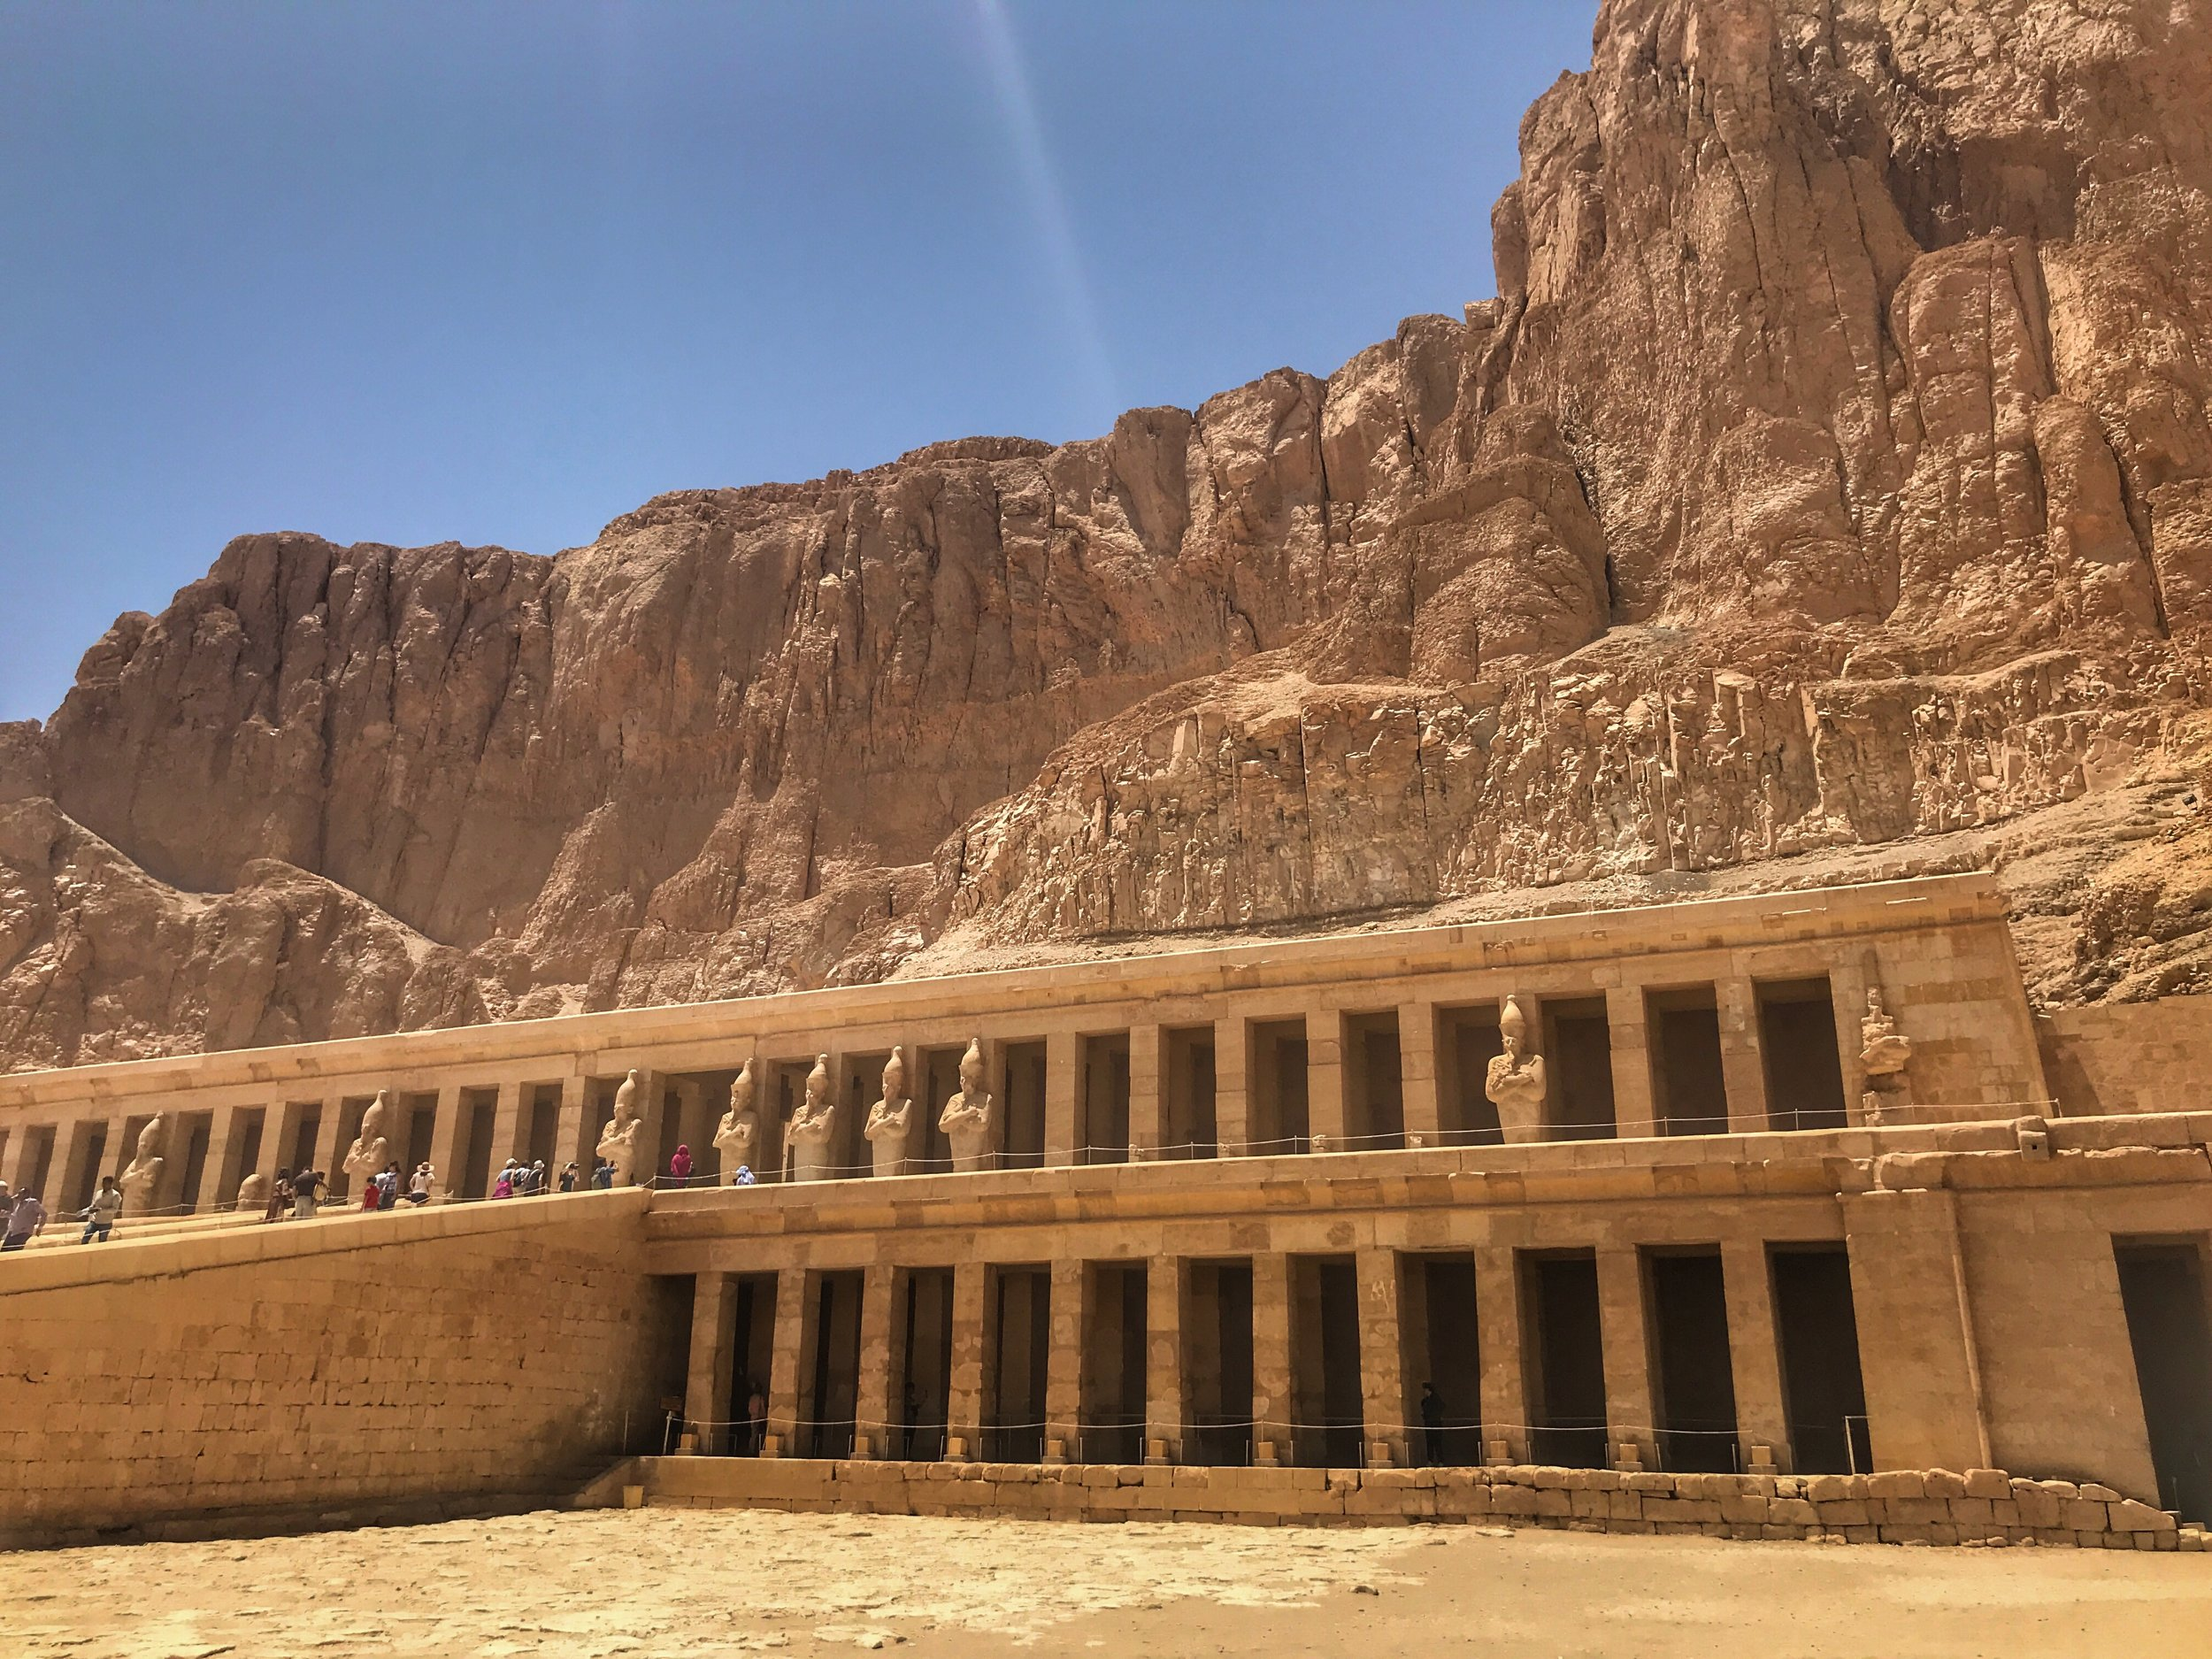 The innovative terraced and columned Mortuary Temple of Hatshepsut in what was once the city of Thebes